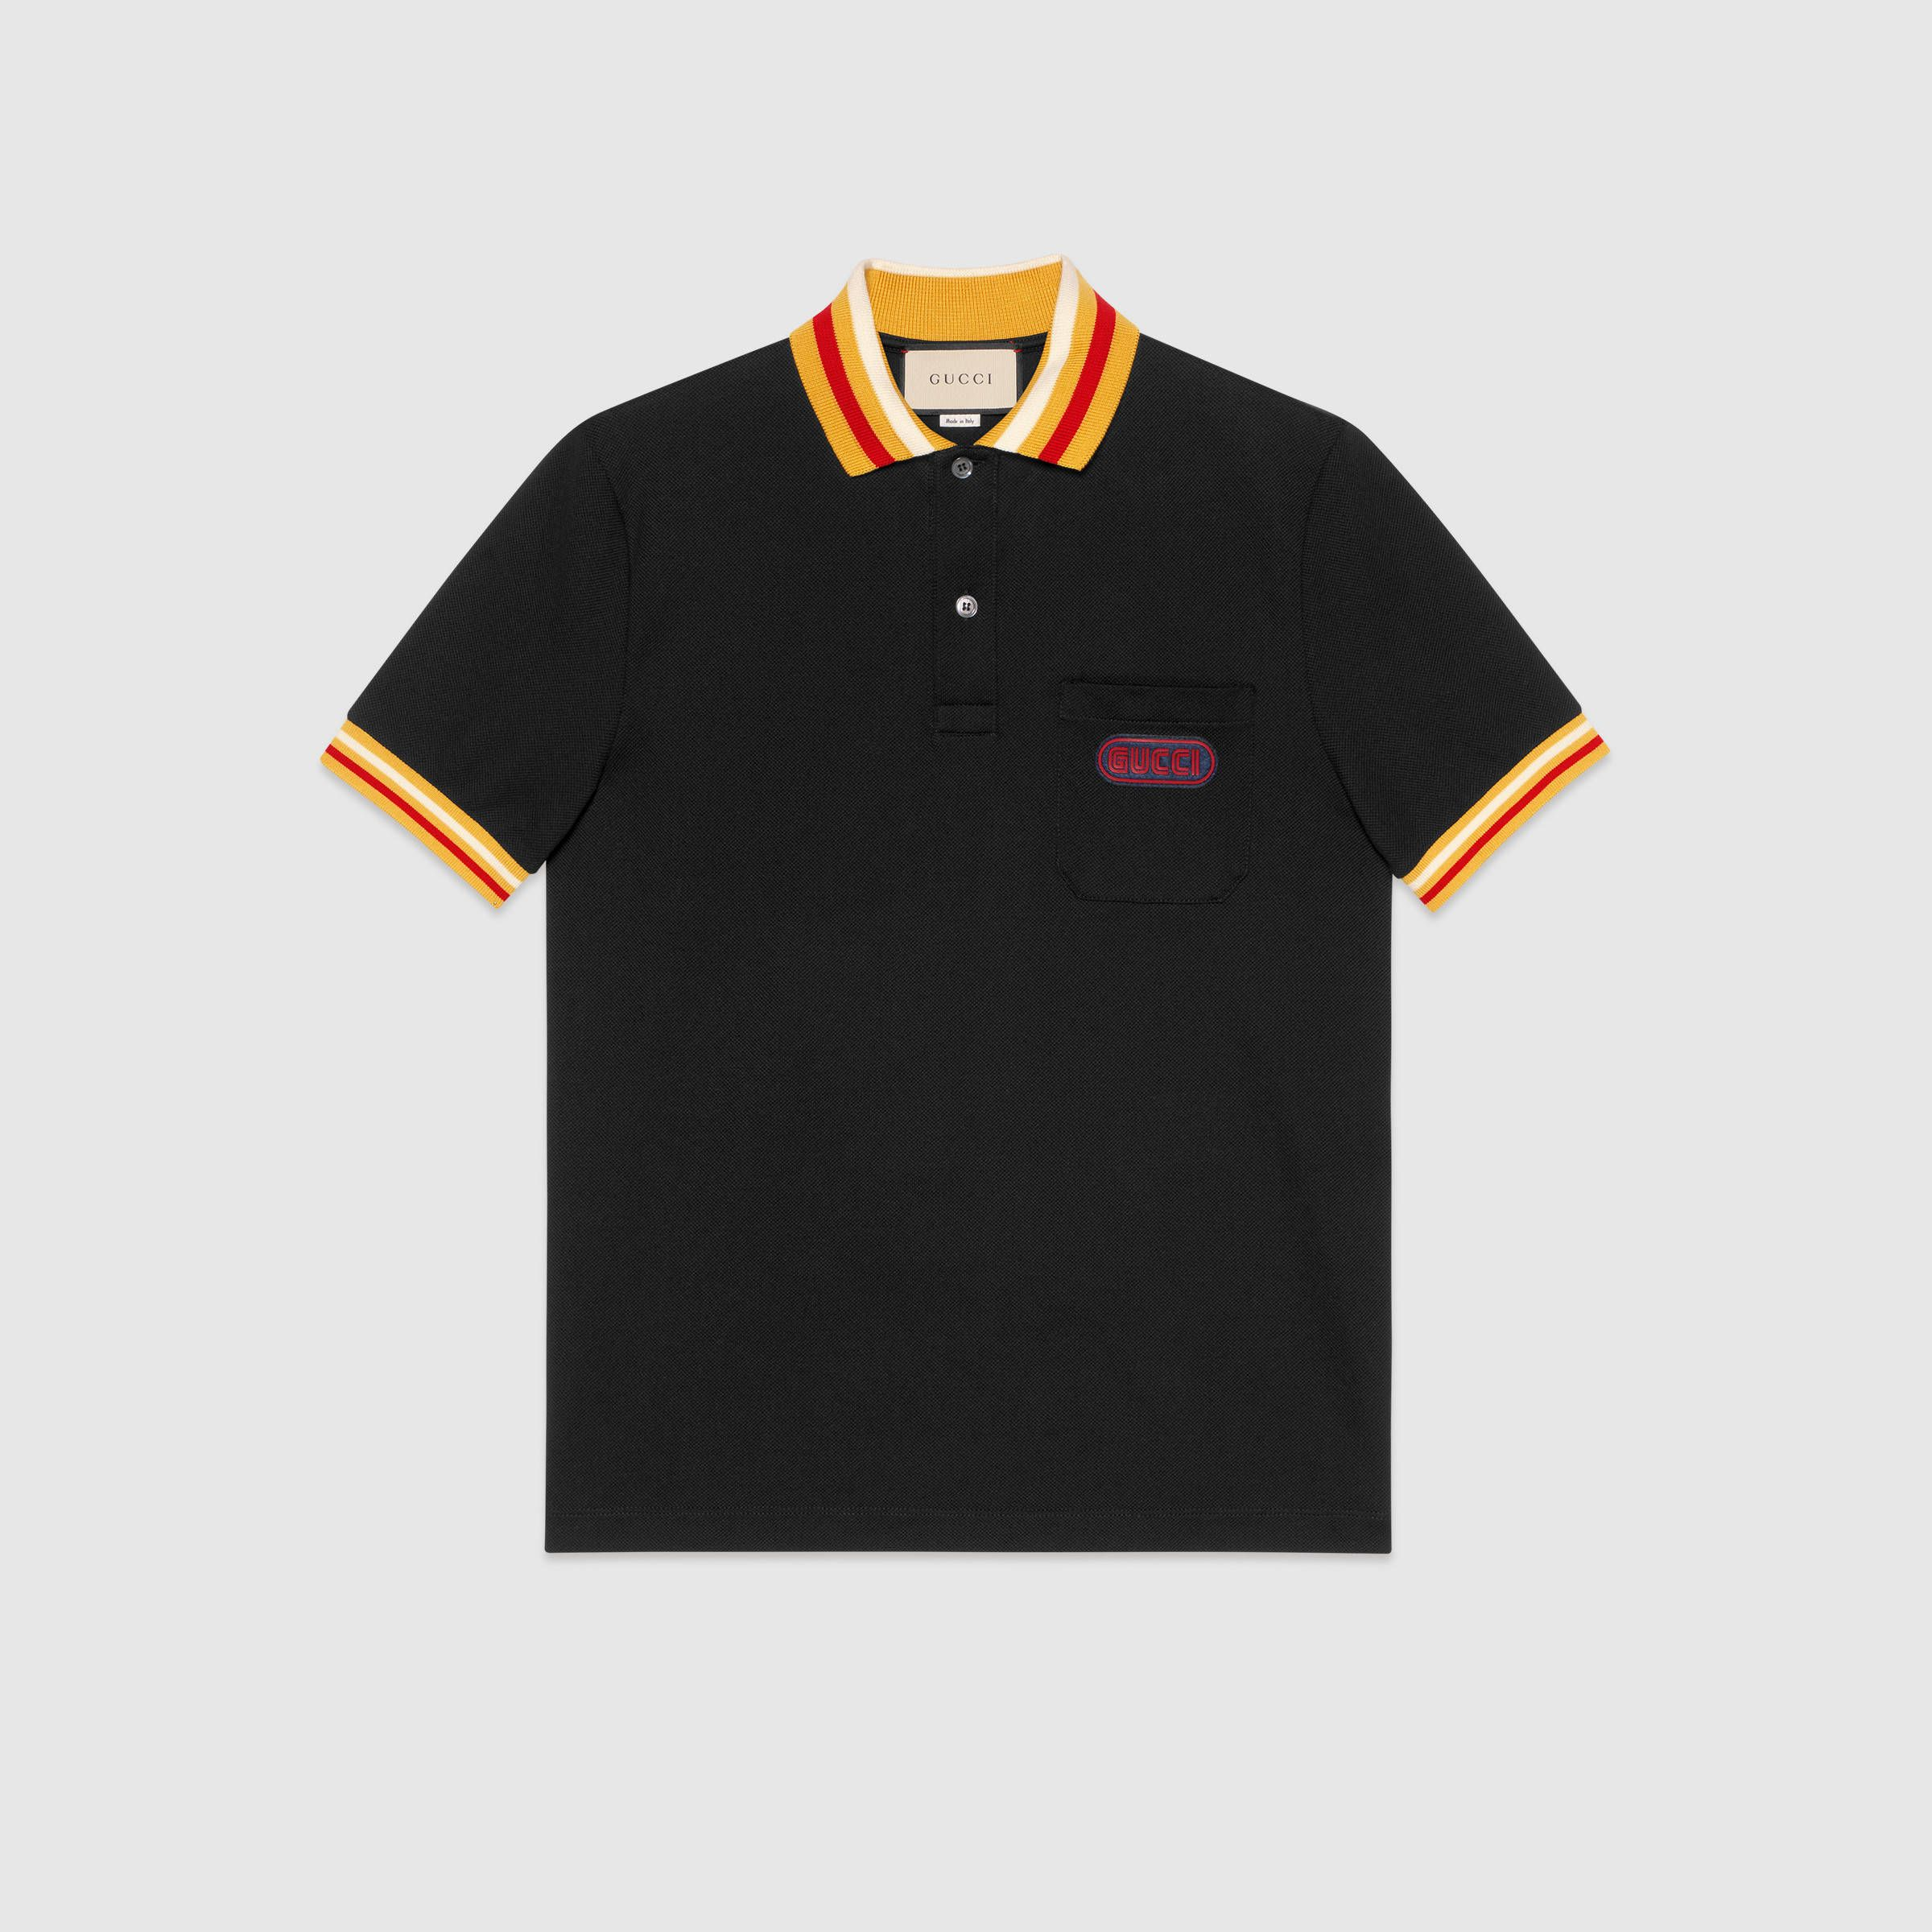 36f6cbb6f119 Polo with Gucci patch - Gucci Men's T-shirts & Polos 527727X9X761082